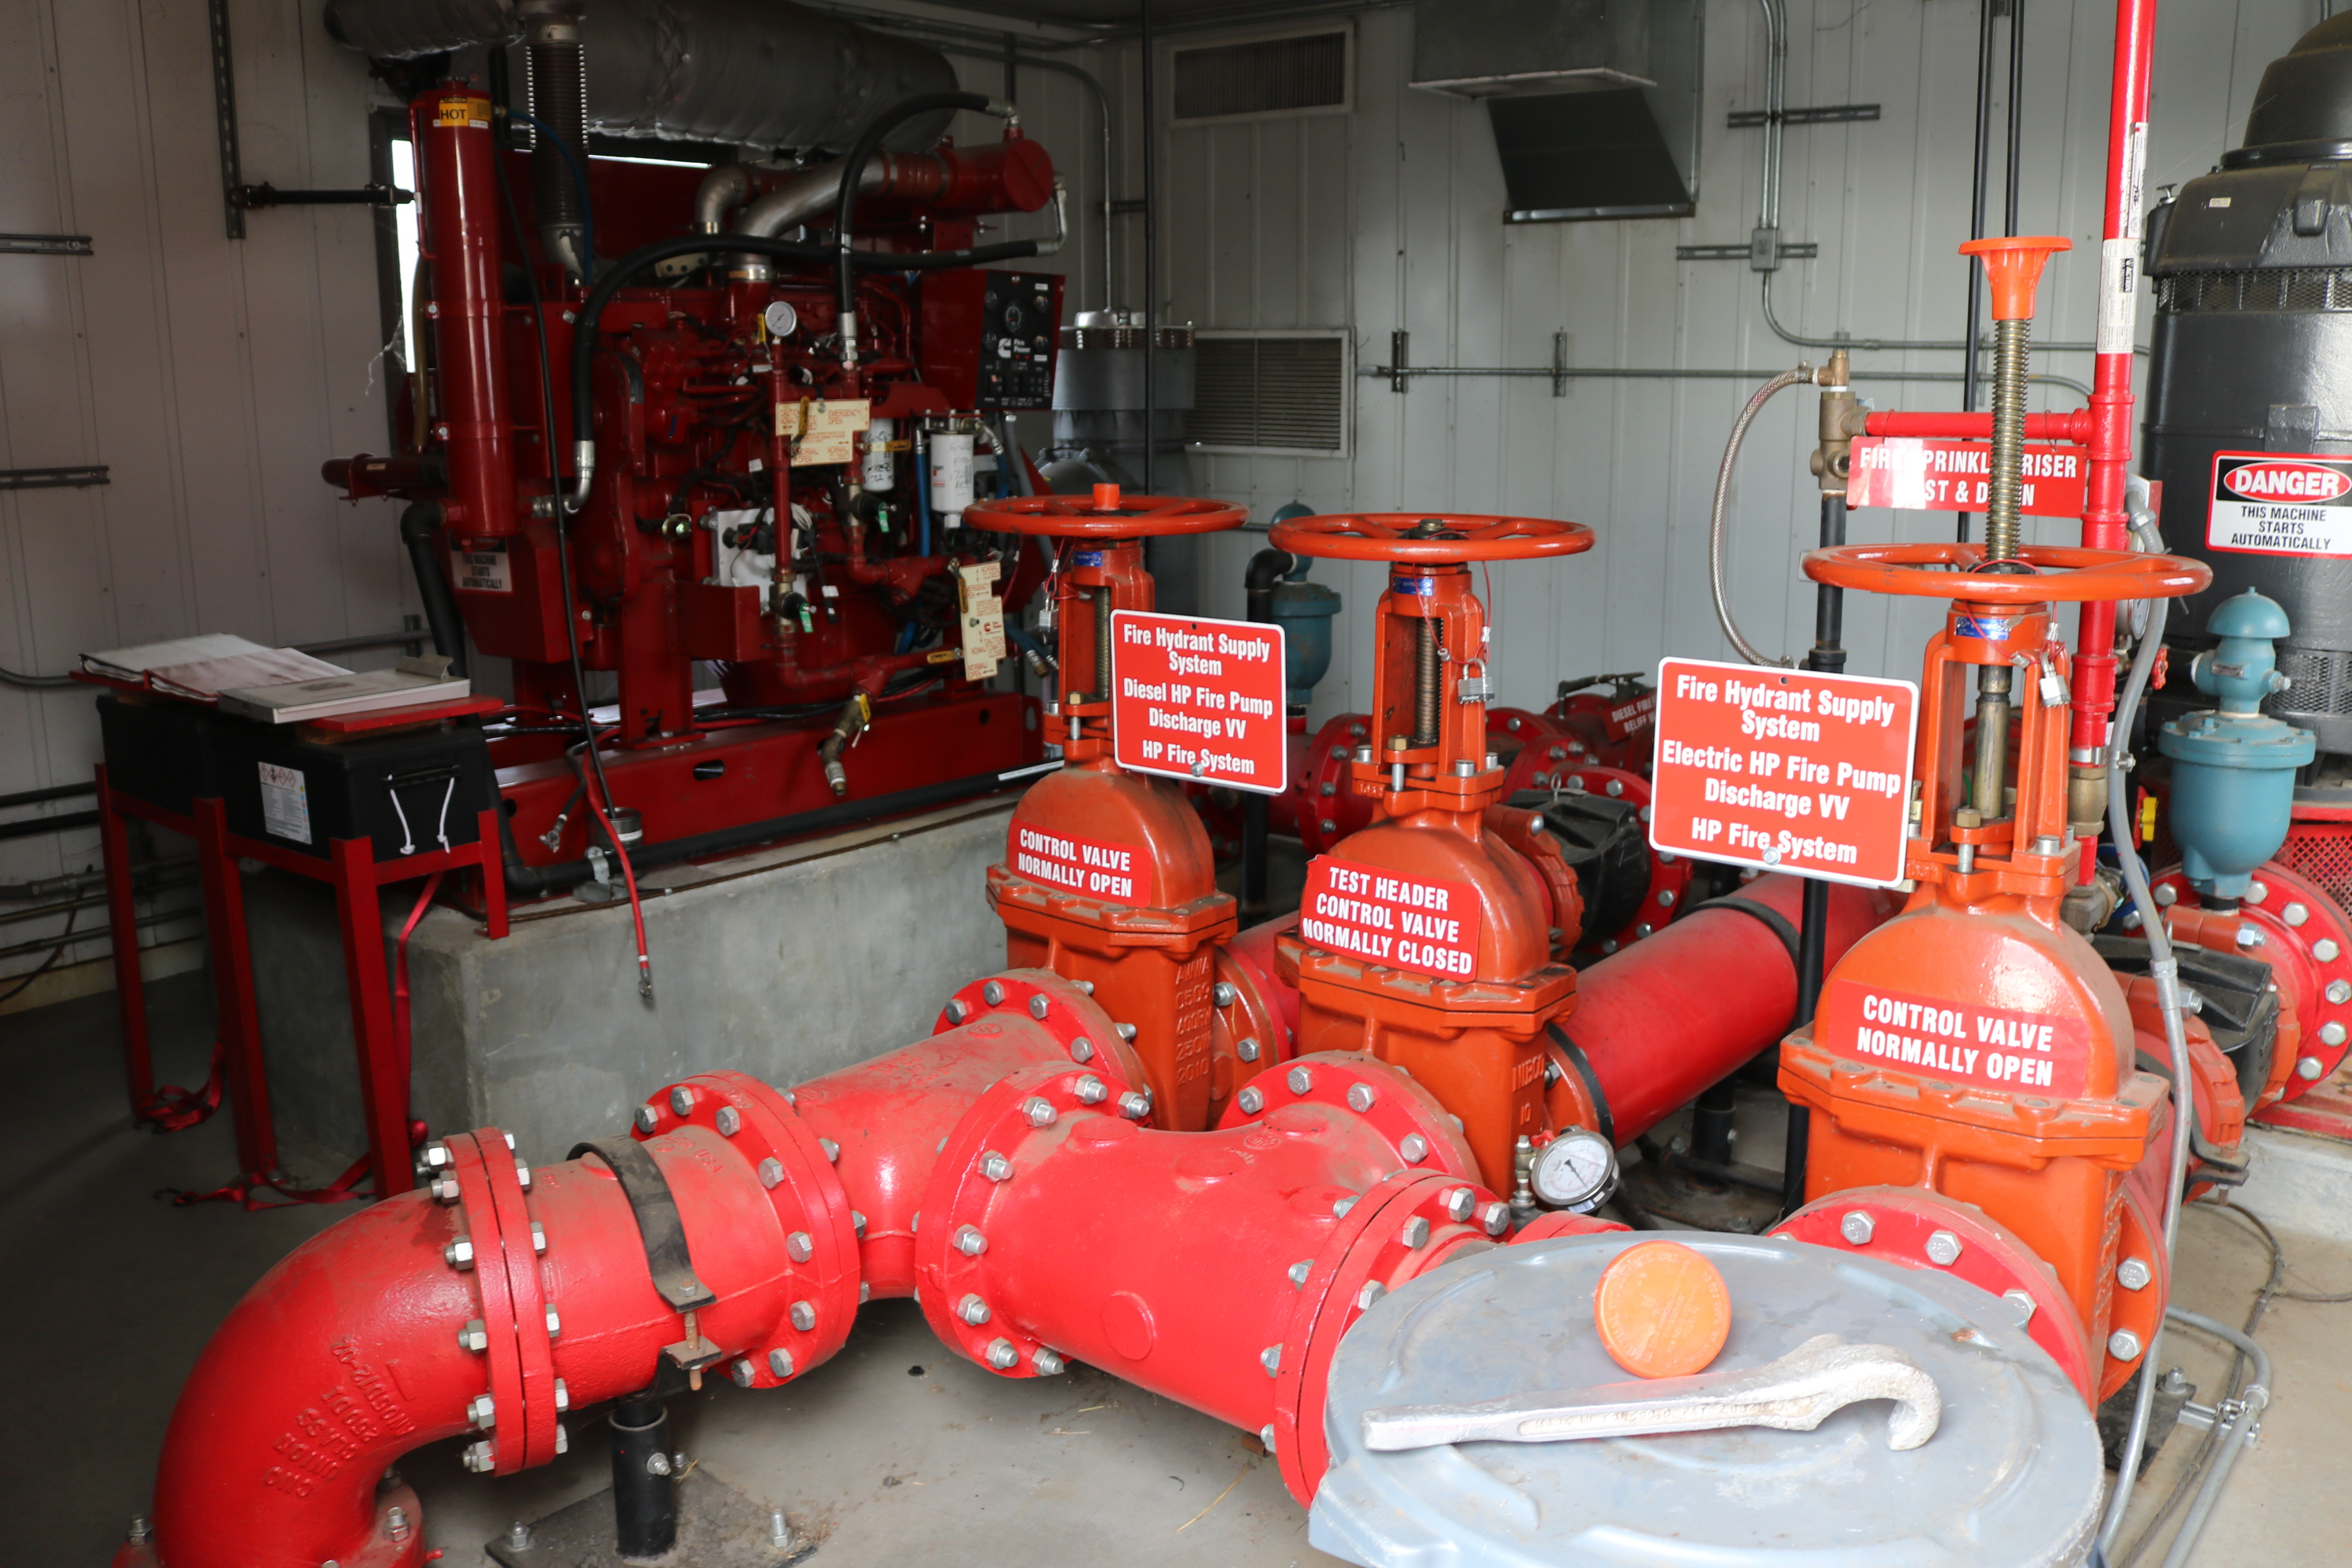 Lot 0 - POWER PLANT EQUIPMENT PHOTOS